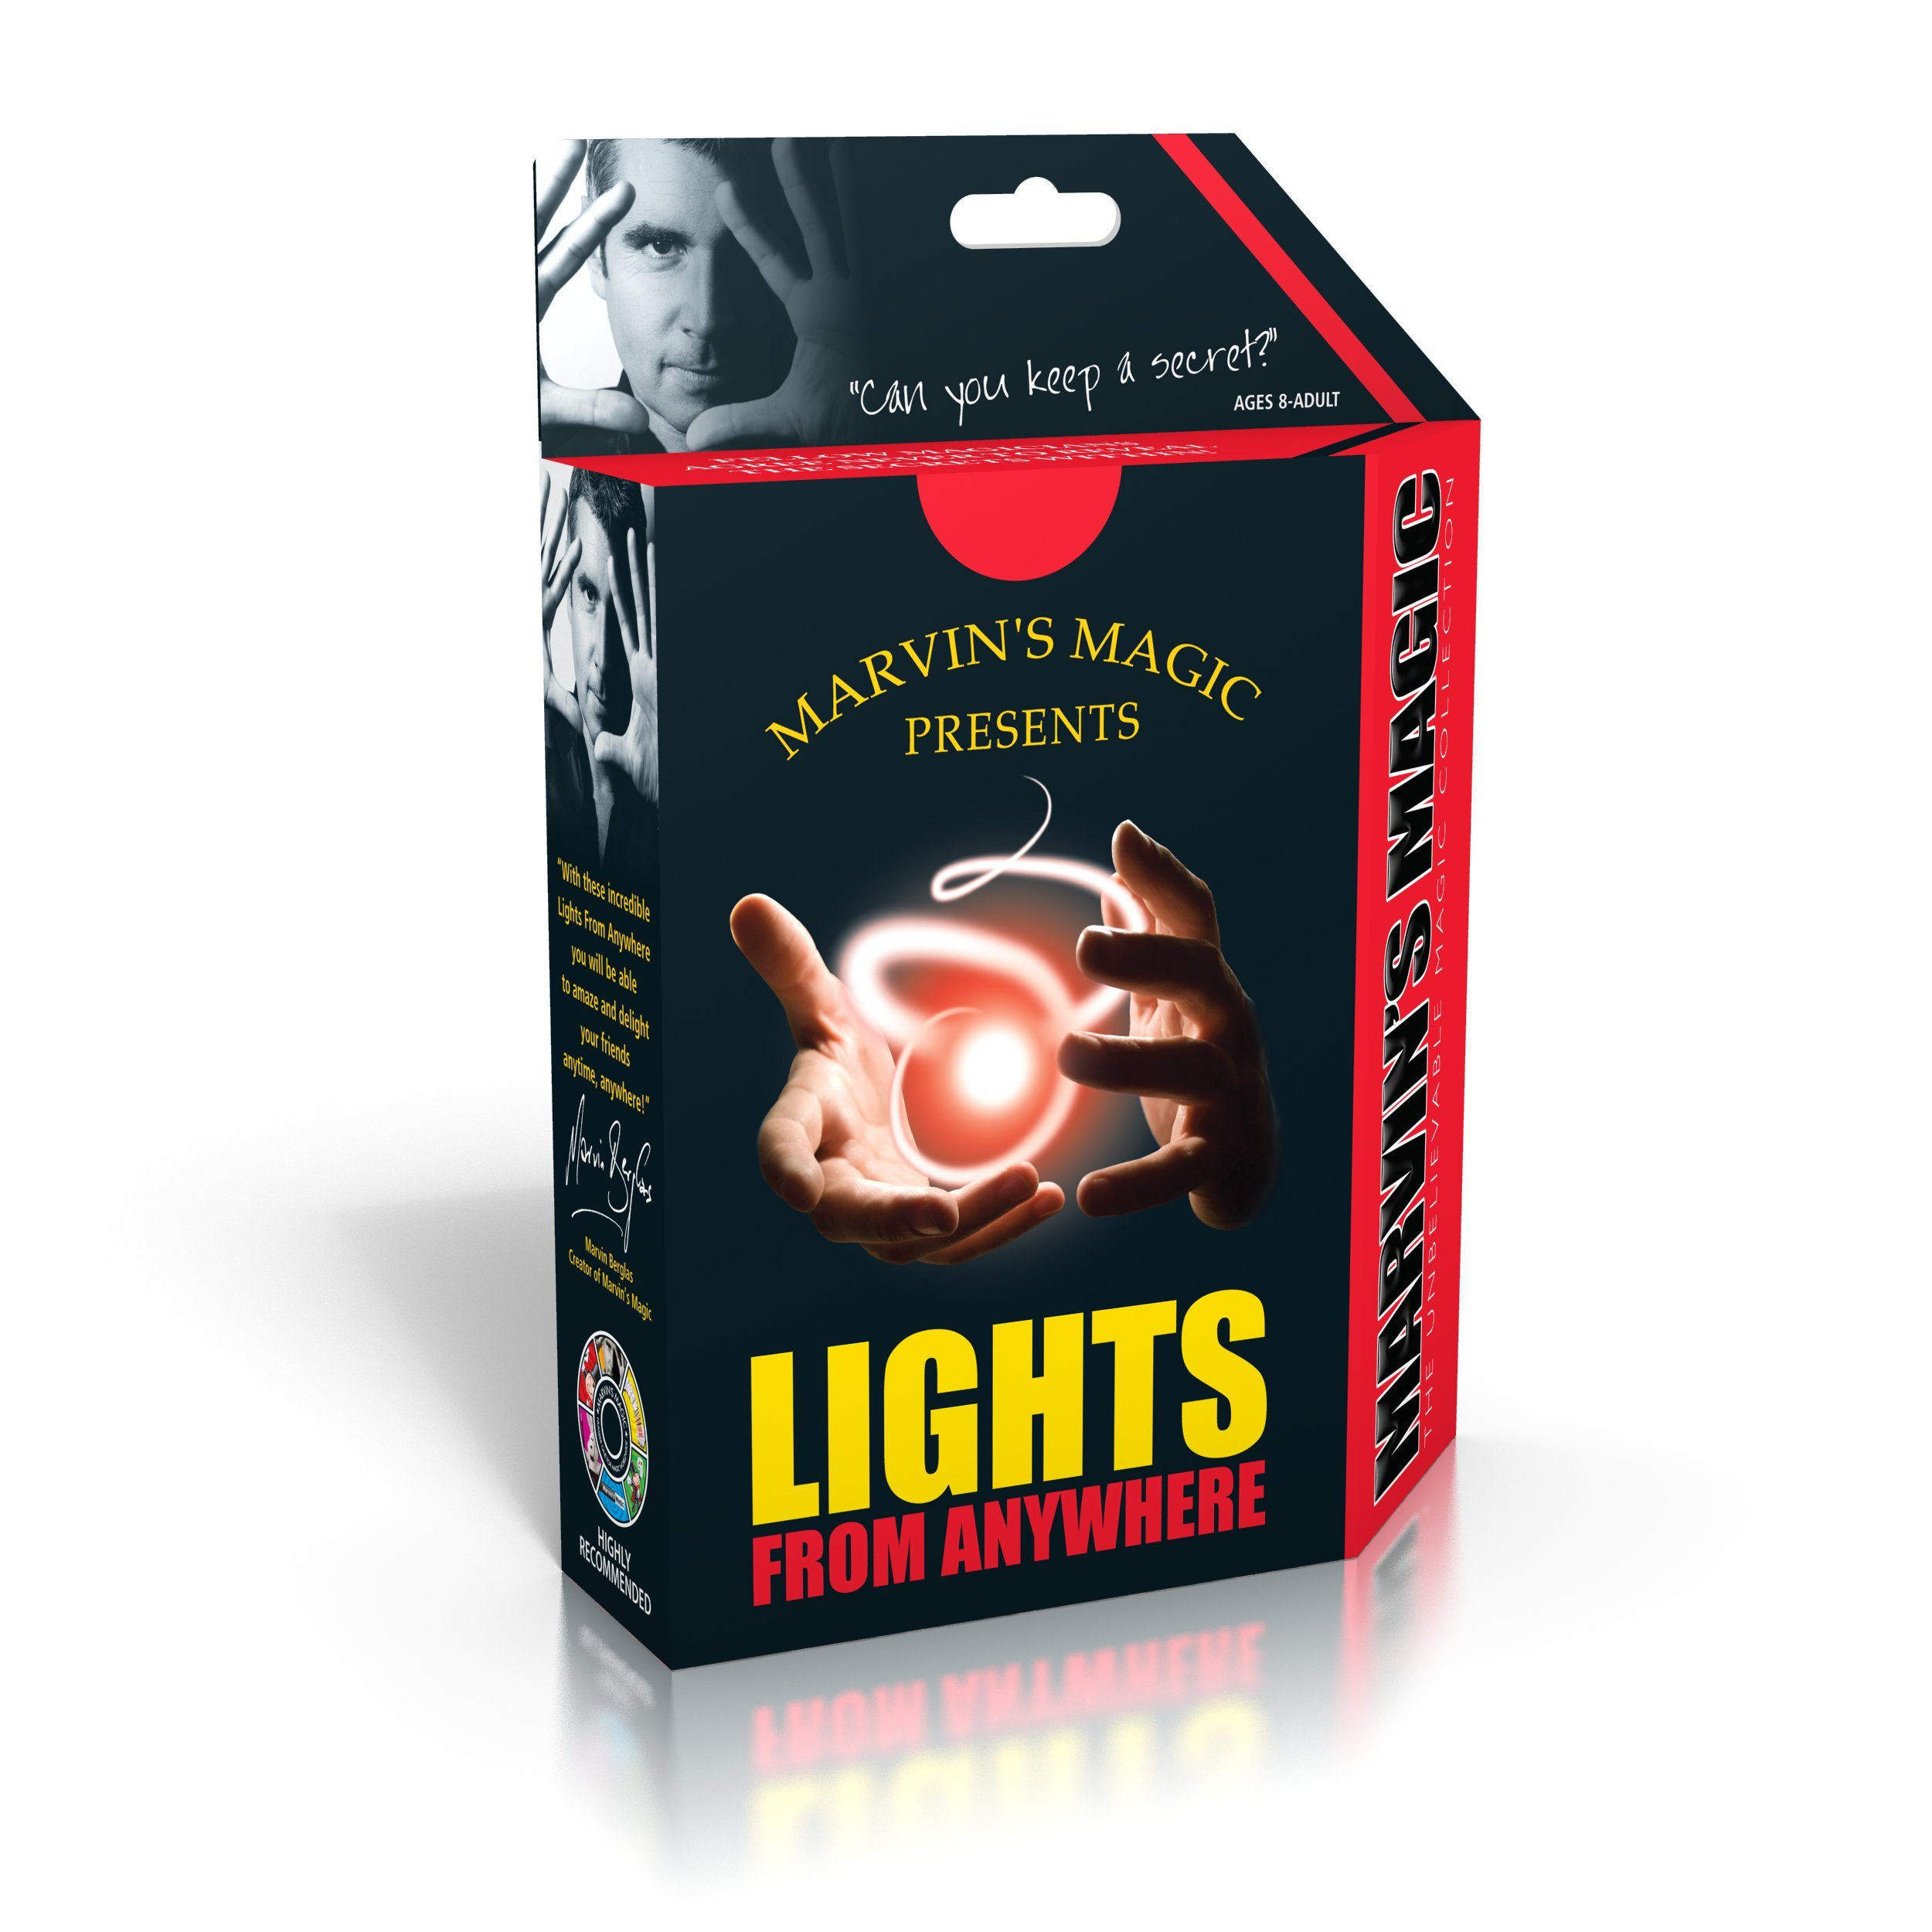 Marvin's Magic - Amazing Lights From Everywhere - Junior Edition | Amazing Magic Set For Kids | Includes Light Props and Instructions | Suitable for Ages 8+